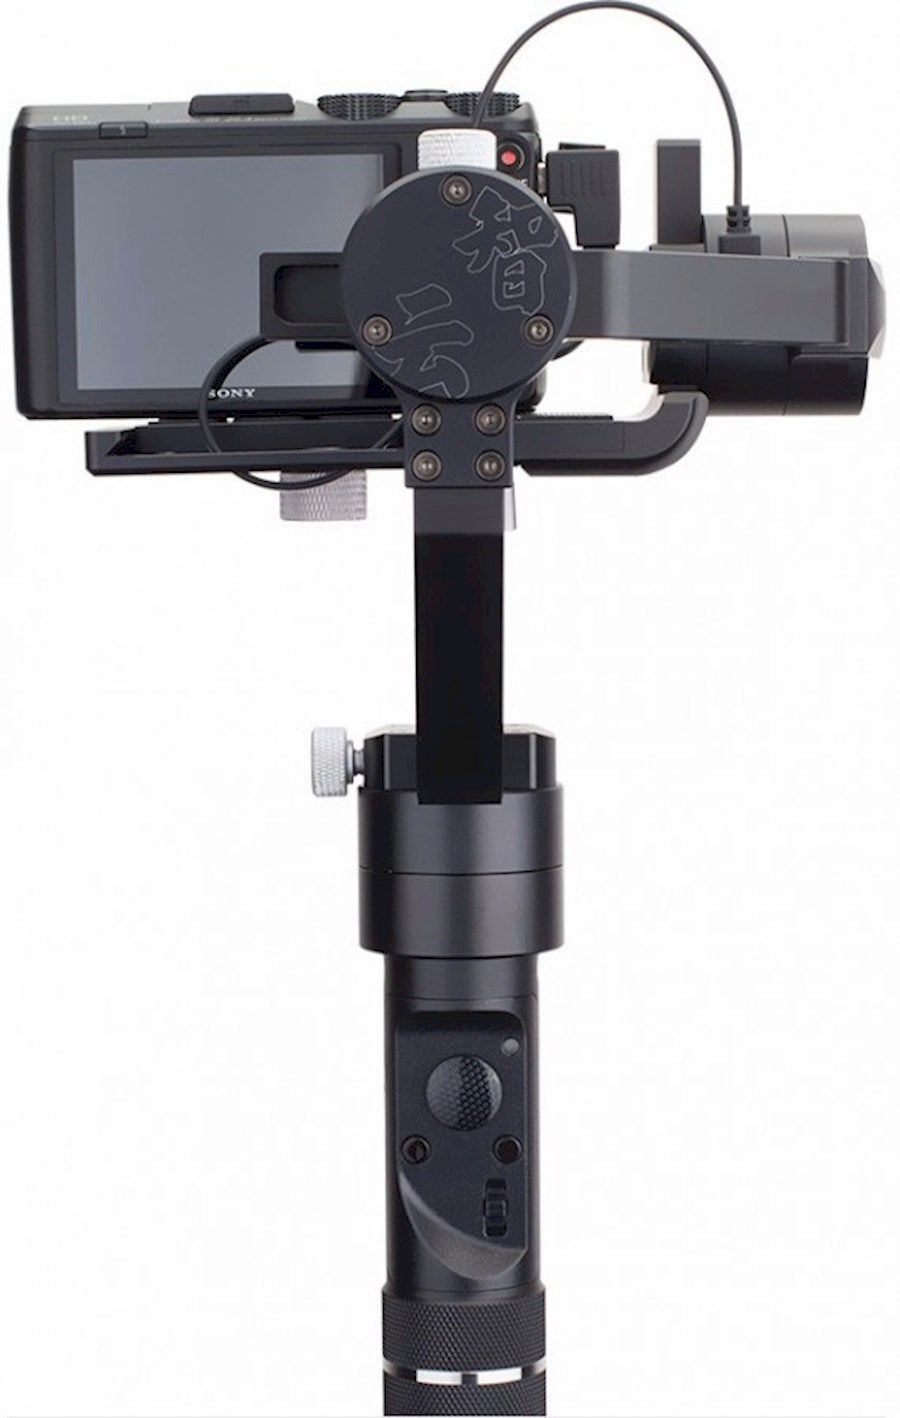 Rent a ZHIYUN CRANE-M | 3-AXIS GIMBAL FOR SMARTPHONES, ACTION CAMERAS, & MIRRORLESS CAMERAS in Duffel from NV DUFFELCOAT PRODUCTIONS